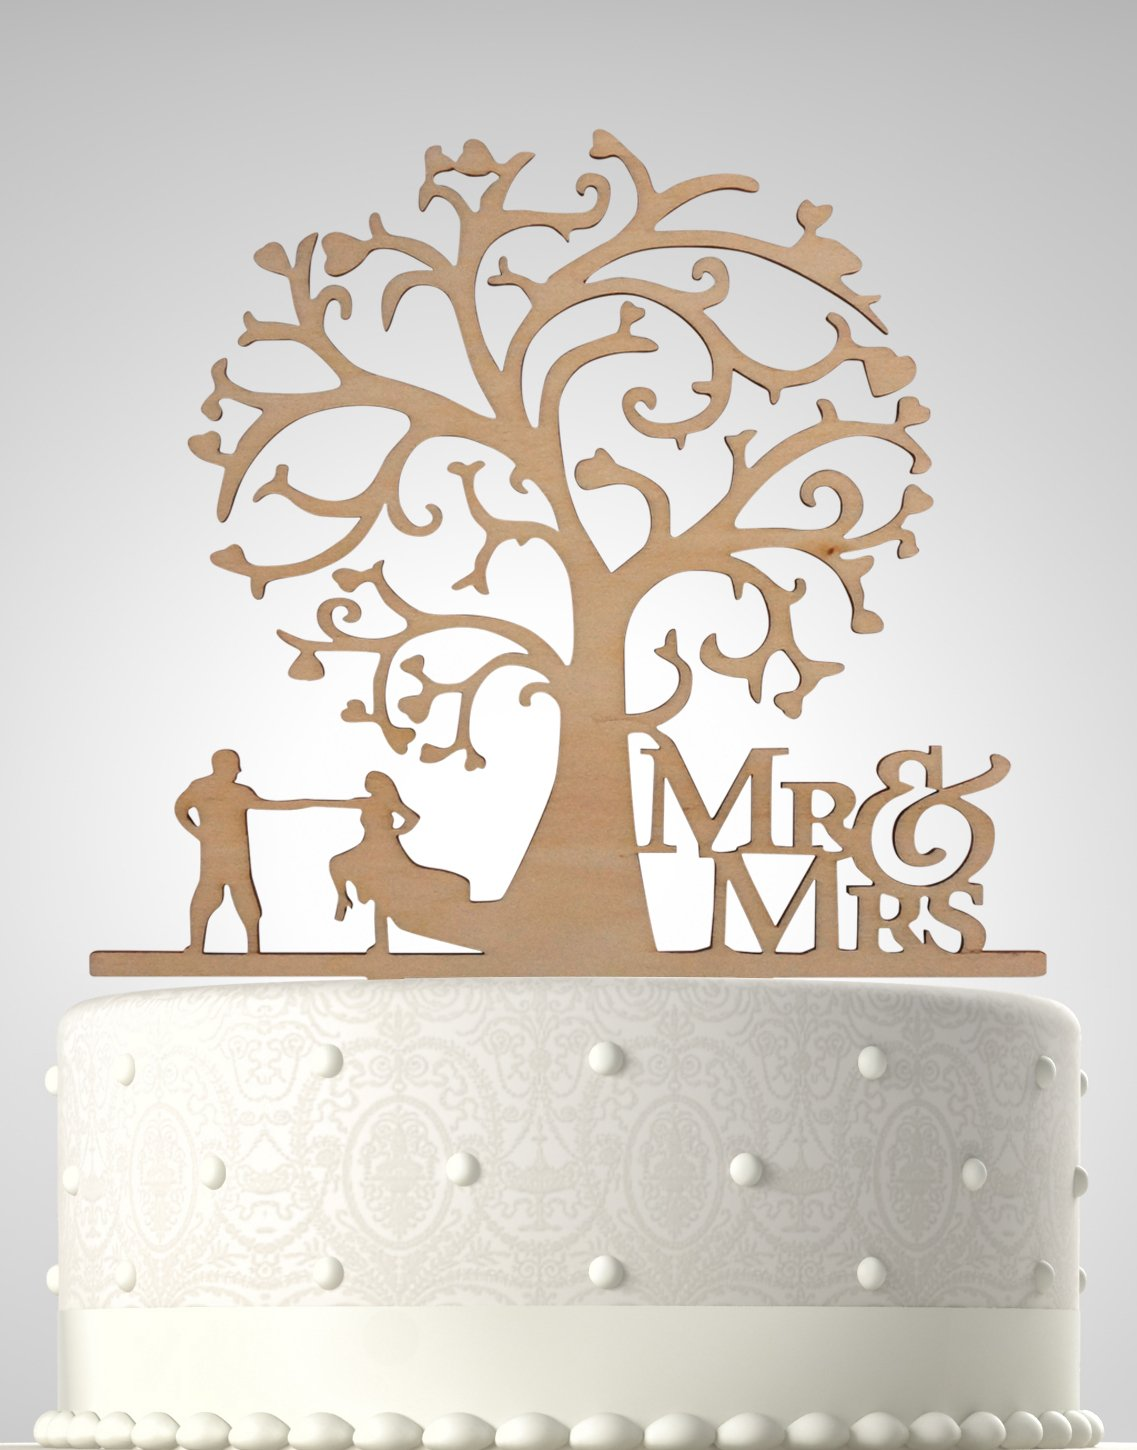 Rubies & Ribbons Wedding Cake Topper Mr & Mrs - Couple Dancing Under Tree Party Decoration with Gift Box (Wood)